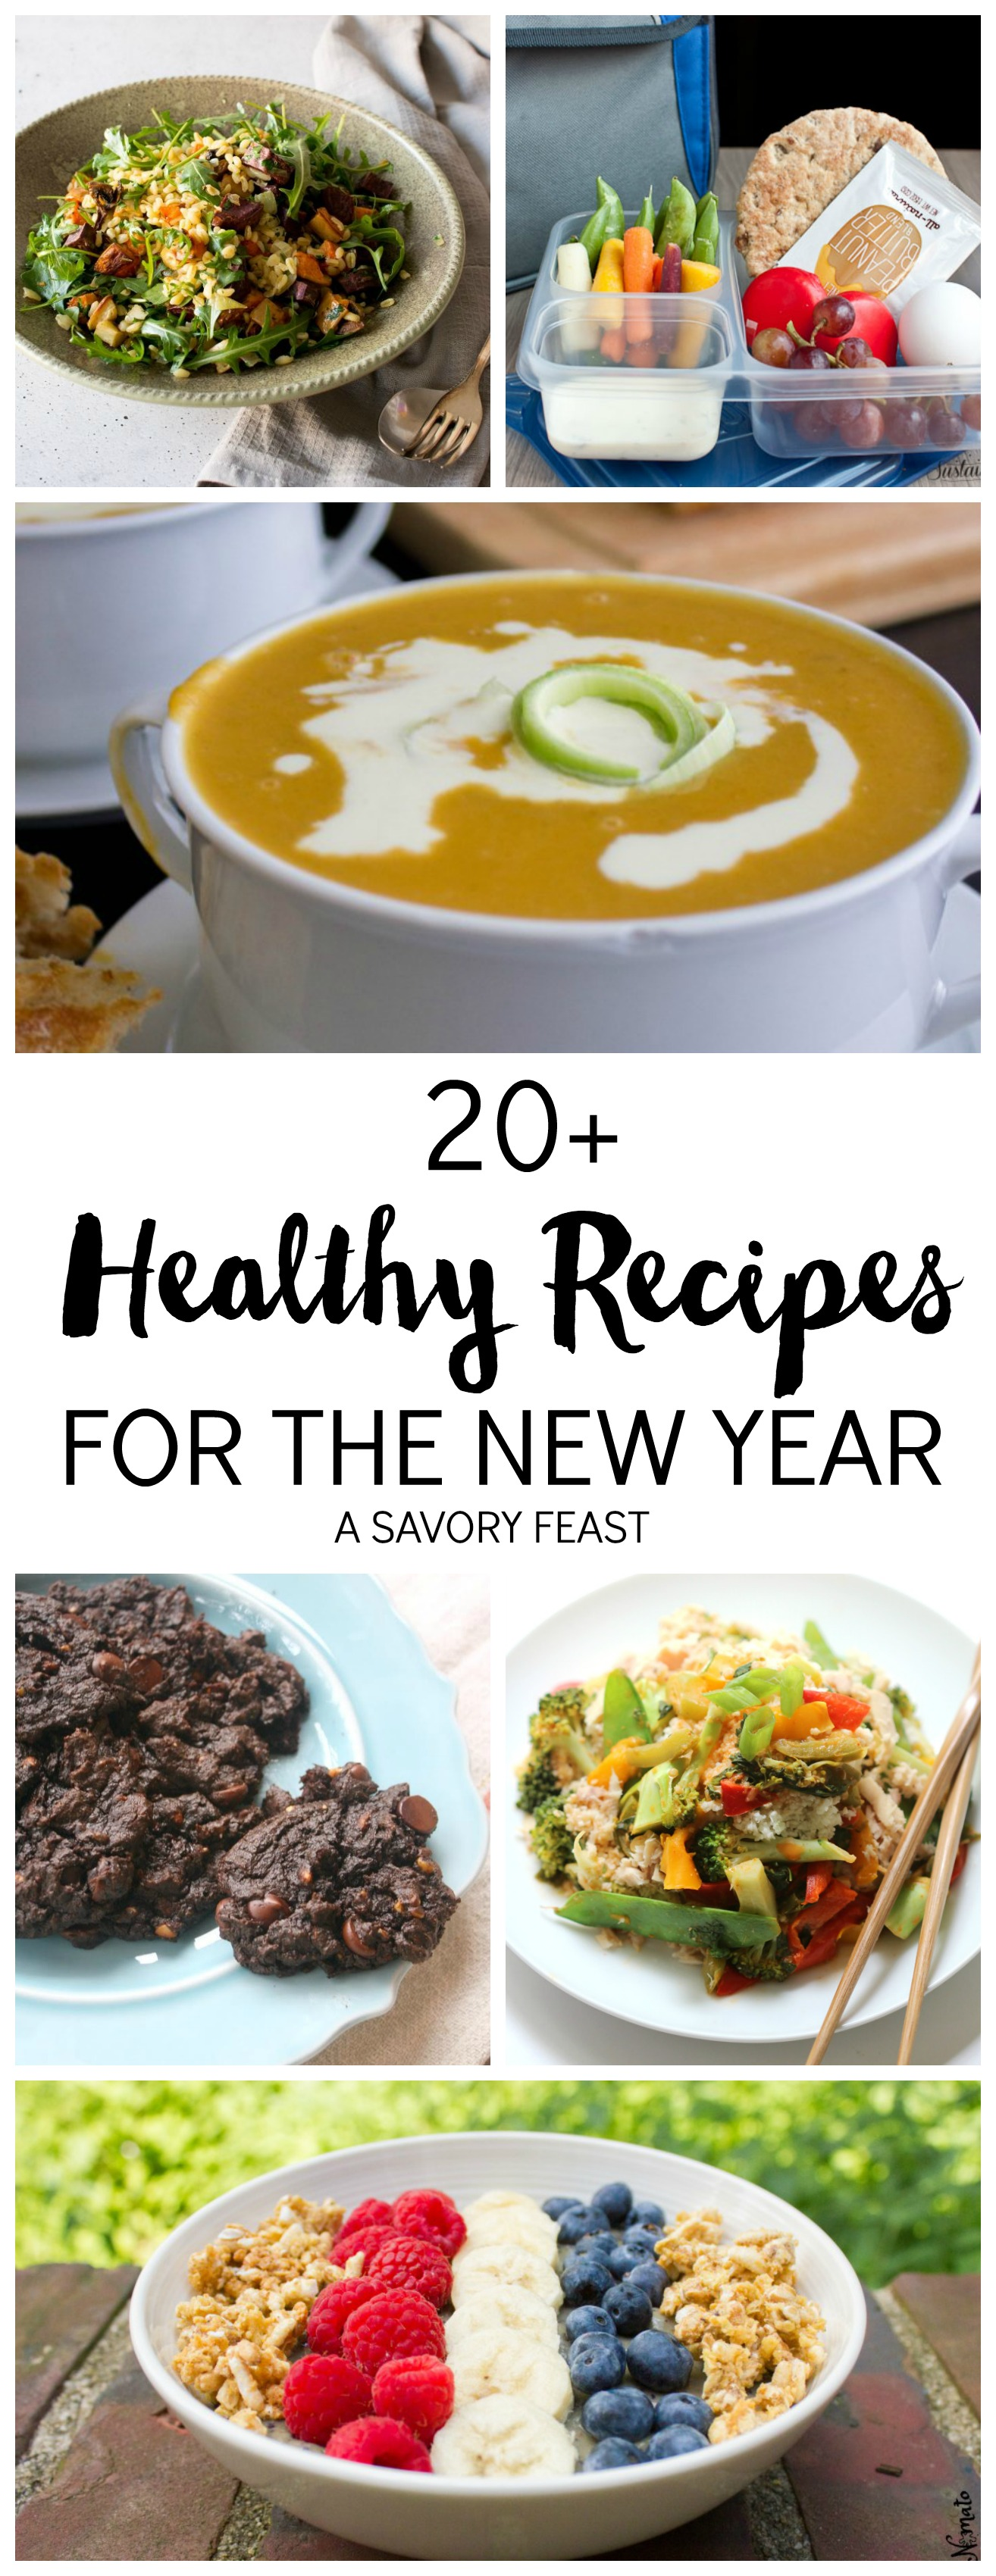 20+ Healthy Recipes for the New Year // Ideas for breakfast, lunch, snacks, dinners and desserts to get you back on track.